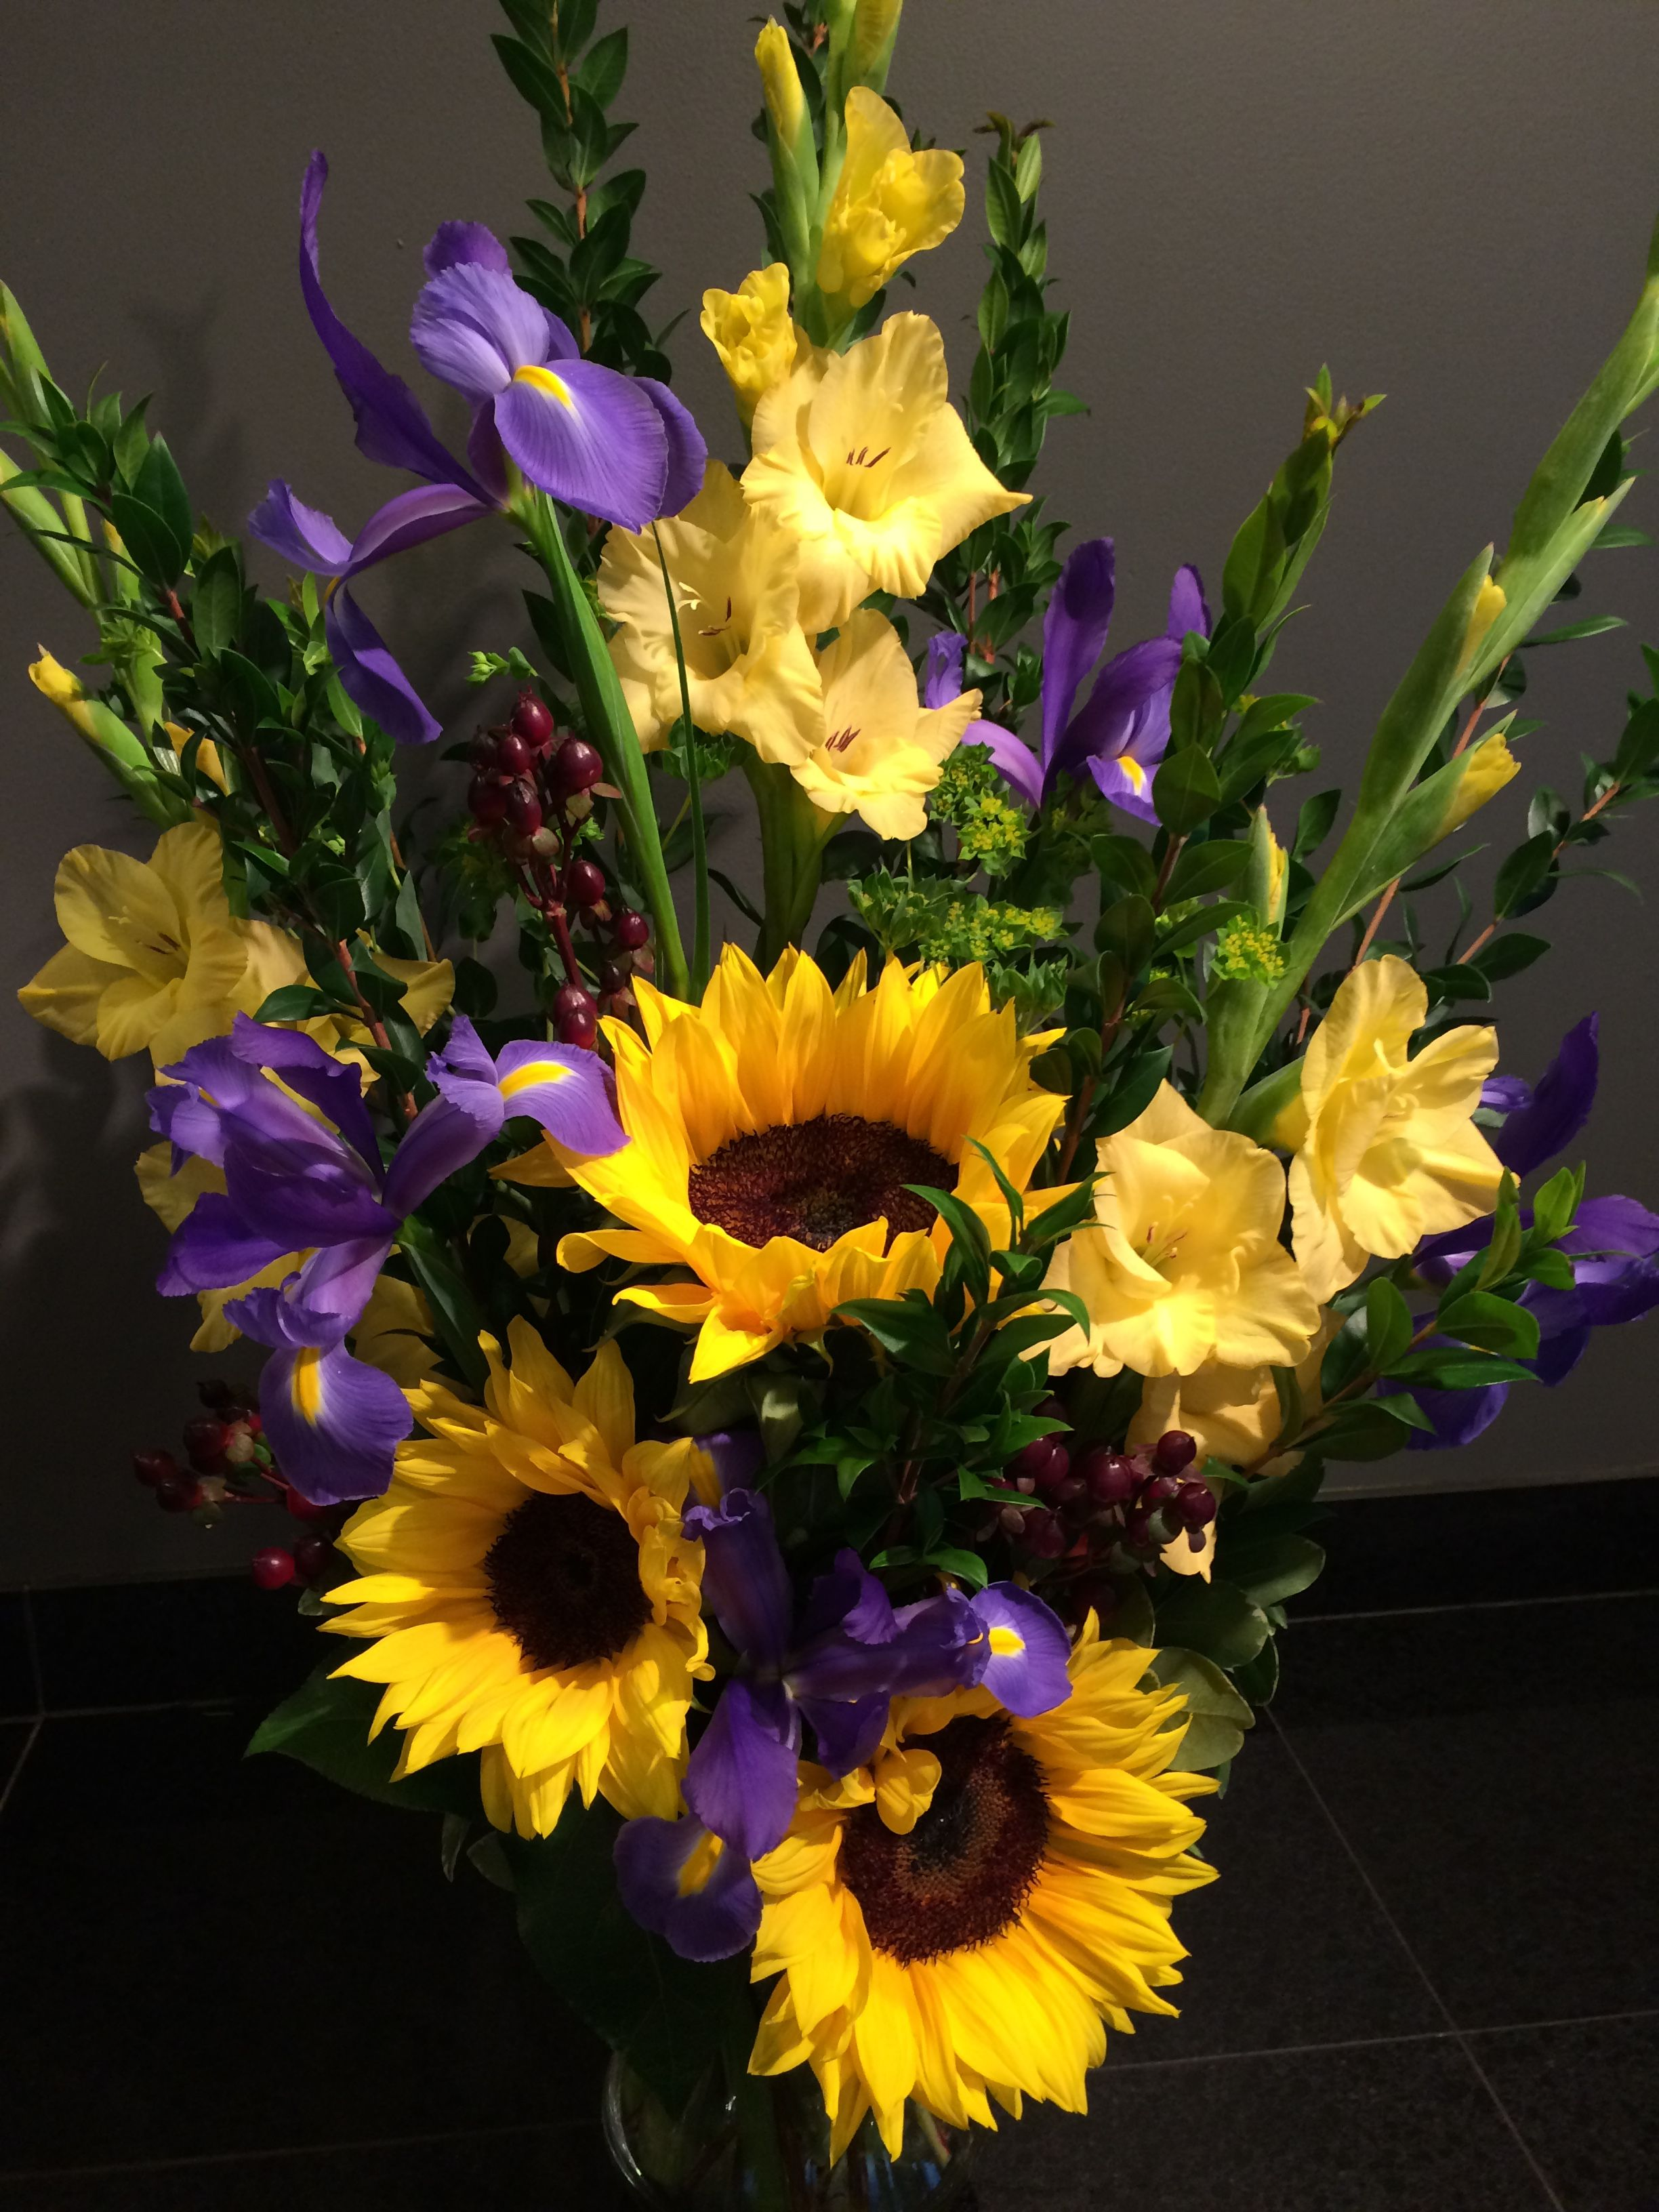 Vase Arrangement With Sunflowers, Glads, Iris All The Flowers Together